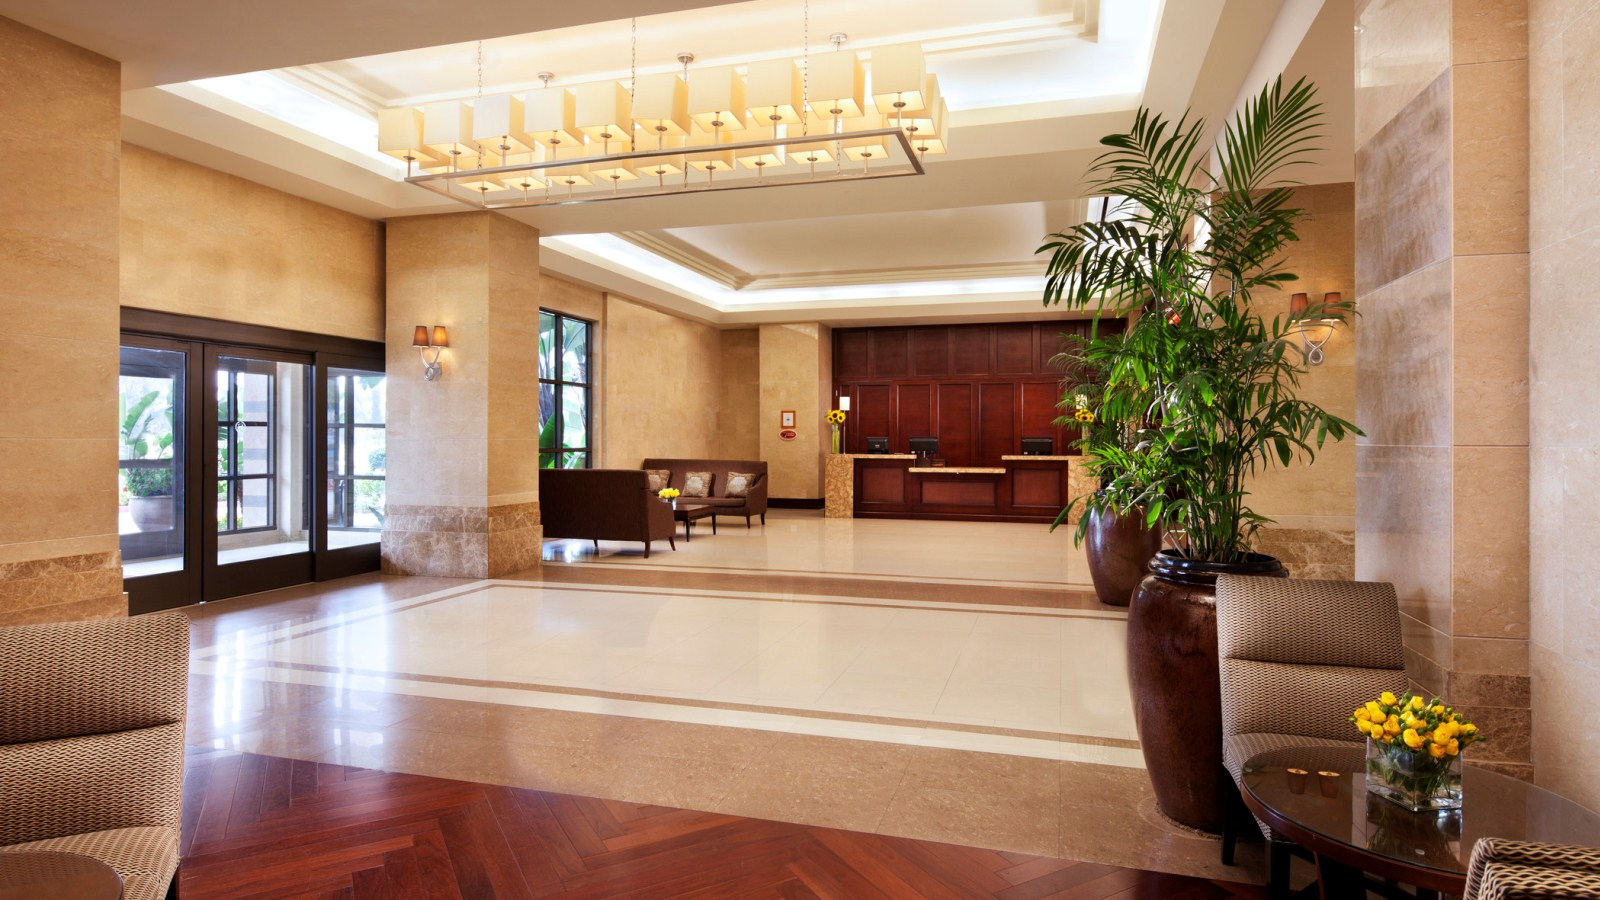 Anaheim Meeting Space - Lobby